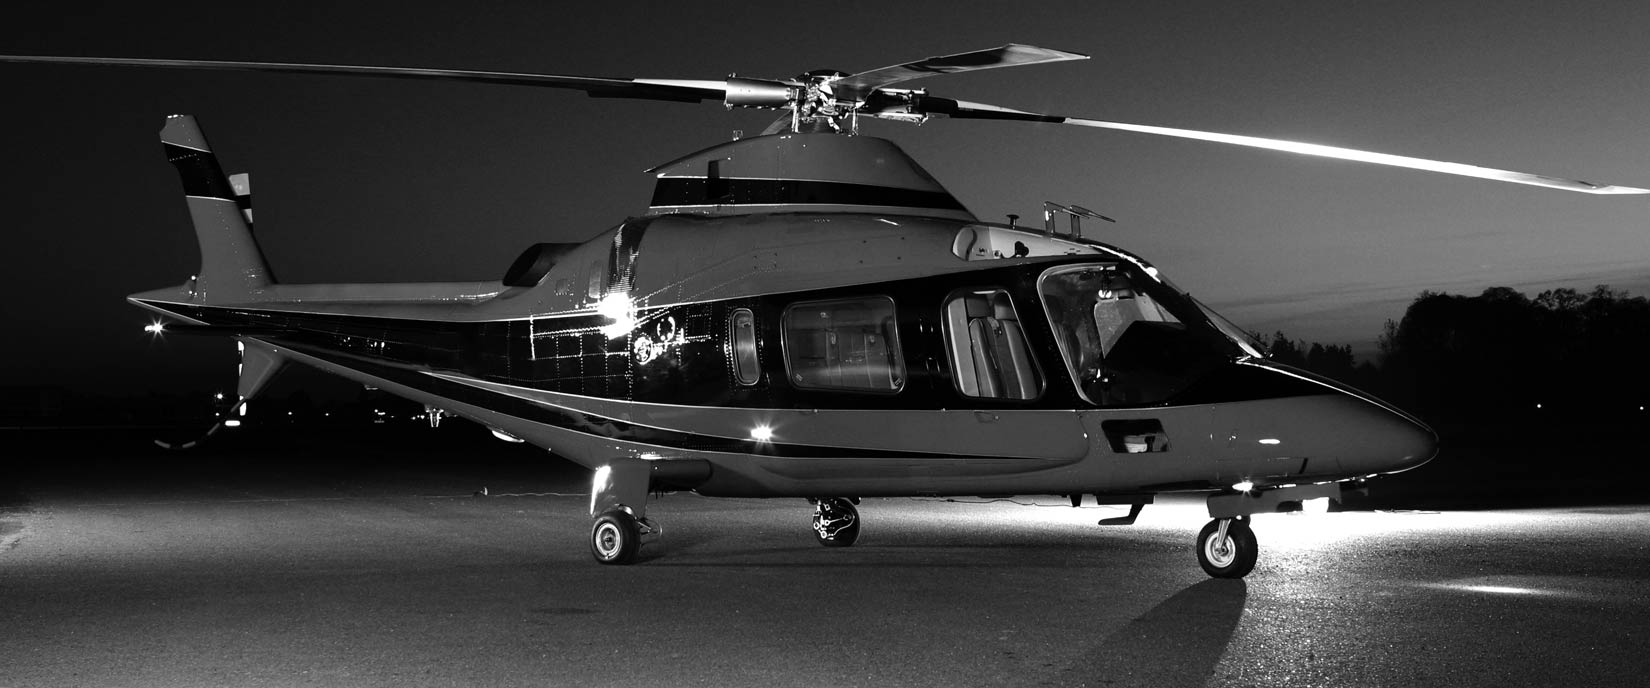 Helicopter sales & acquisitions - Acquiring a new or used helicopter can be a daunting task particularly if it's your first purchase. Helipartnership can operate in an impartial advisory role or can negotiate the deal on your behalf.